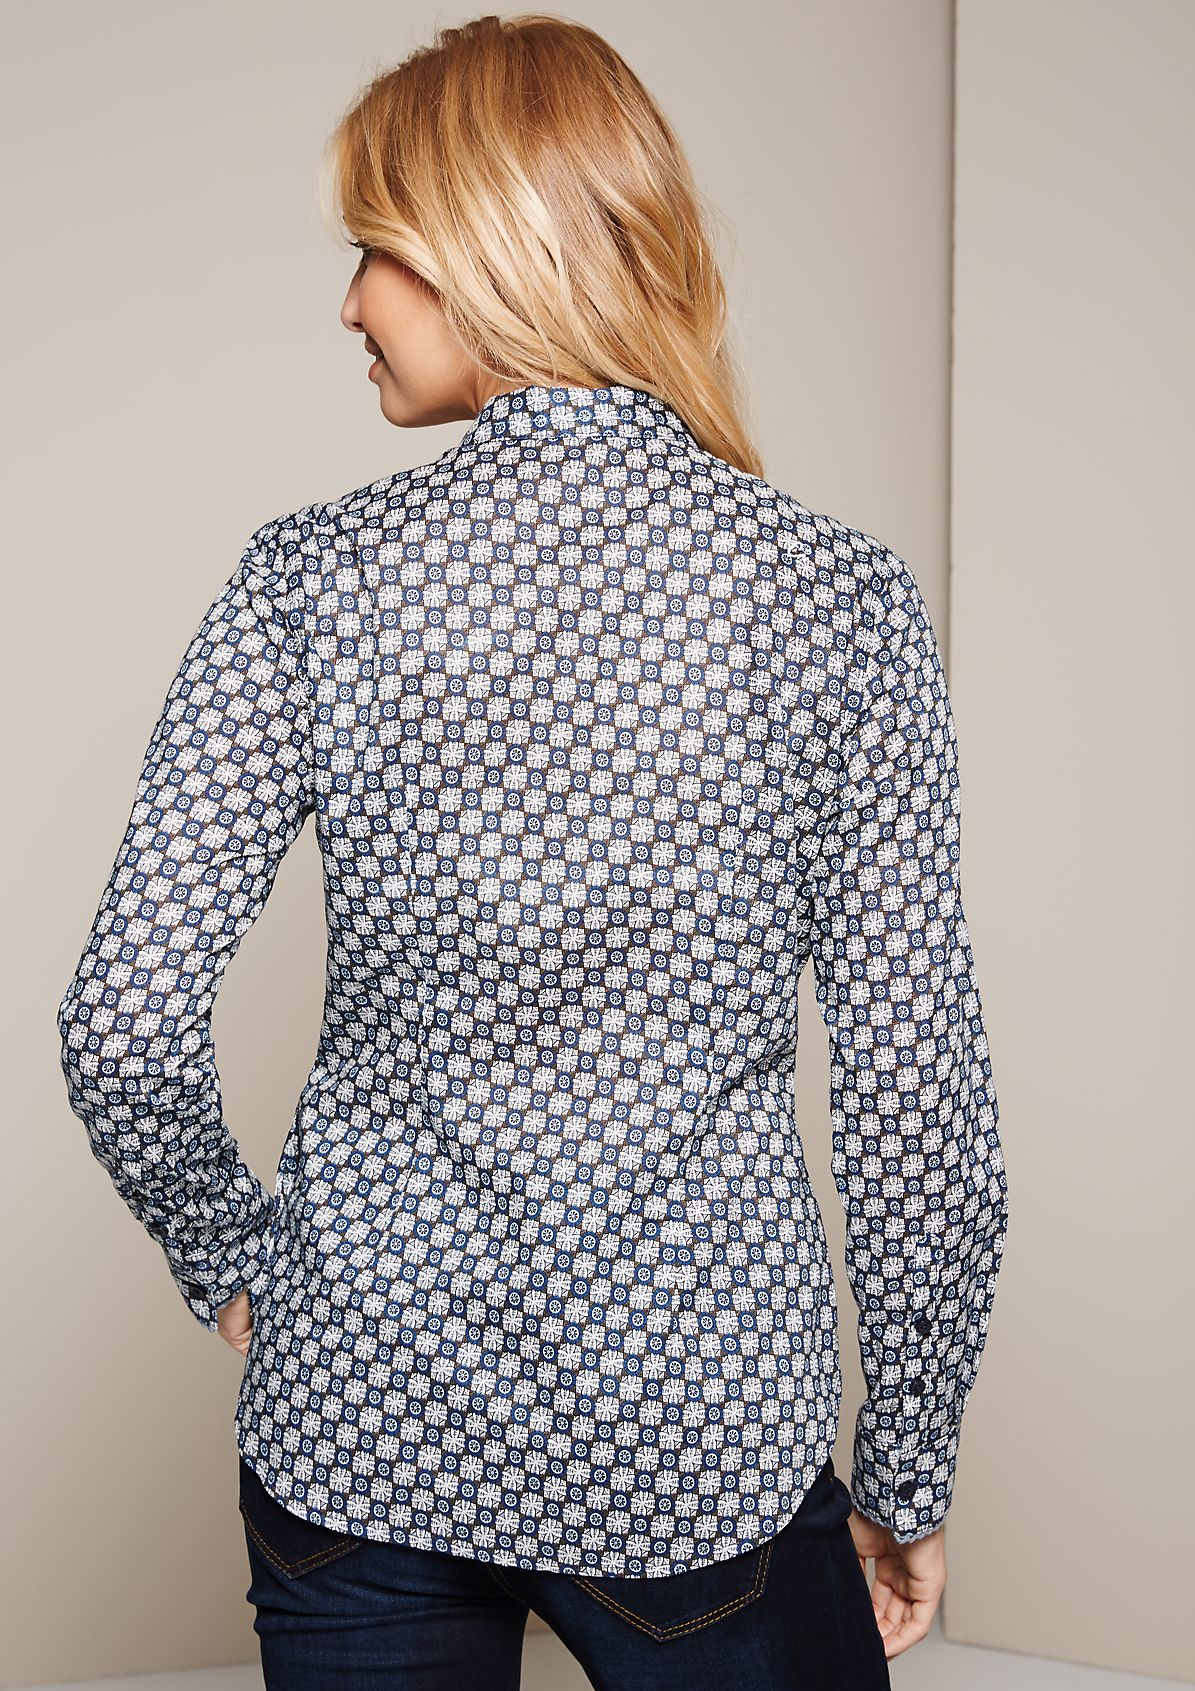 Elegant long sleeve blouse with a beautiful minimal pattern from s.Oliver